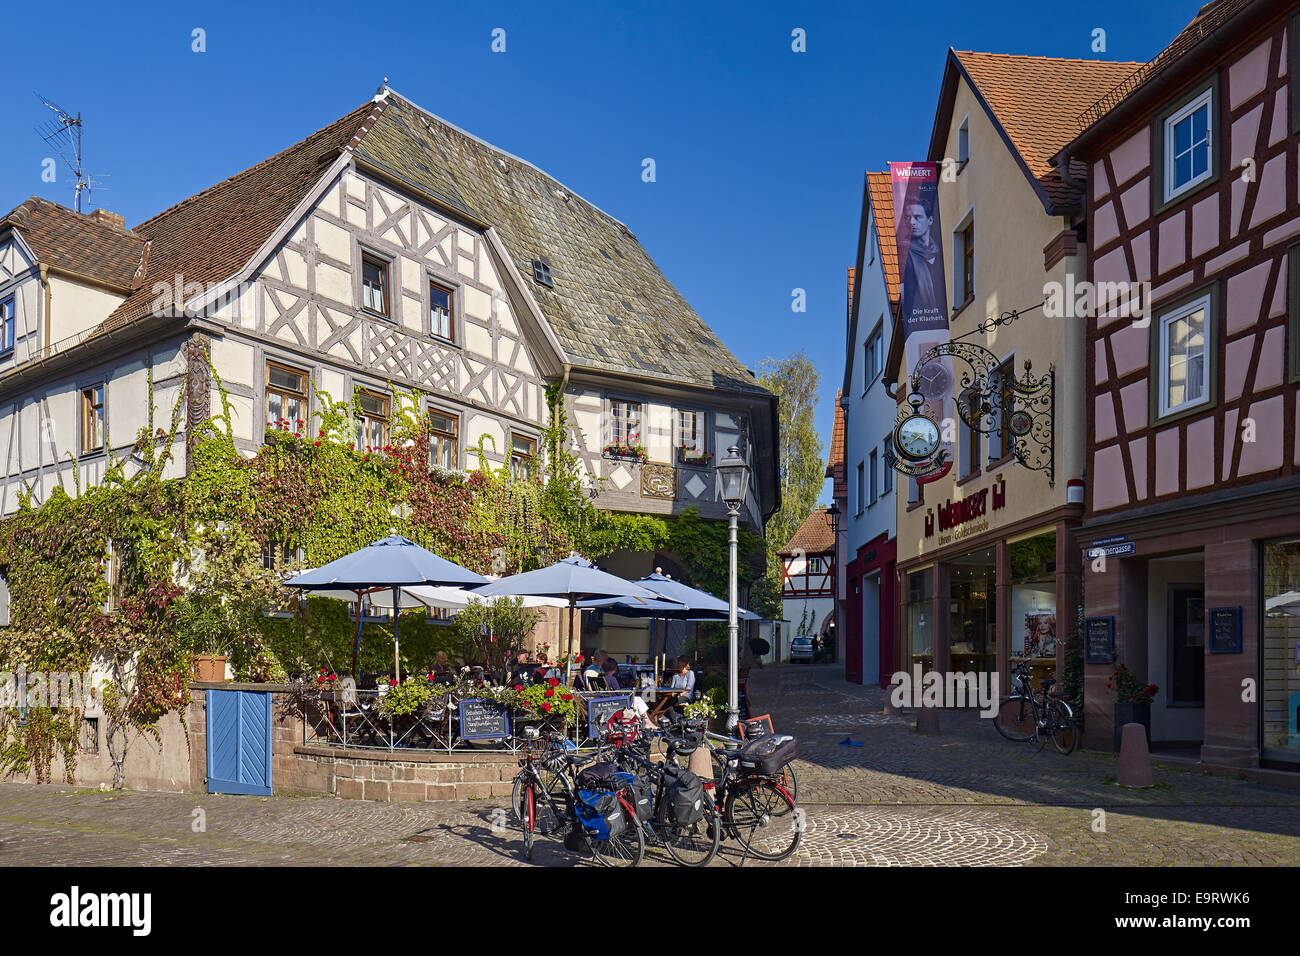 Gasthof krone in lohr am main germany stock photo for Ps tischdesign lohr am main